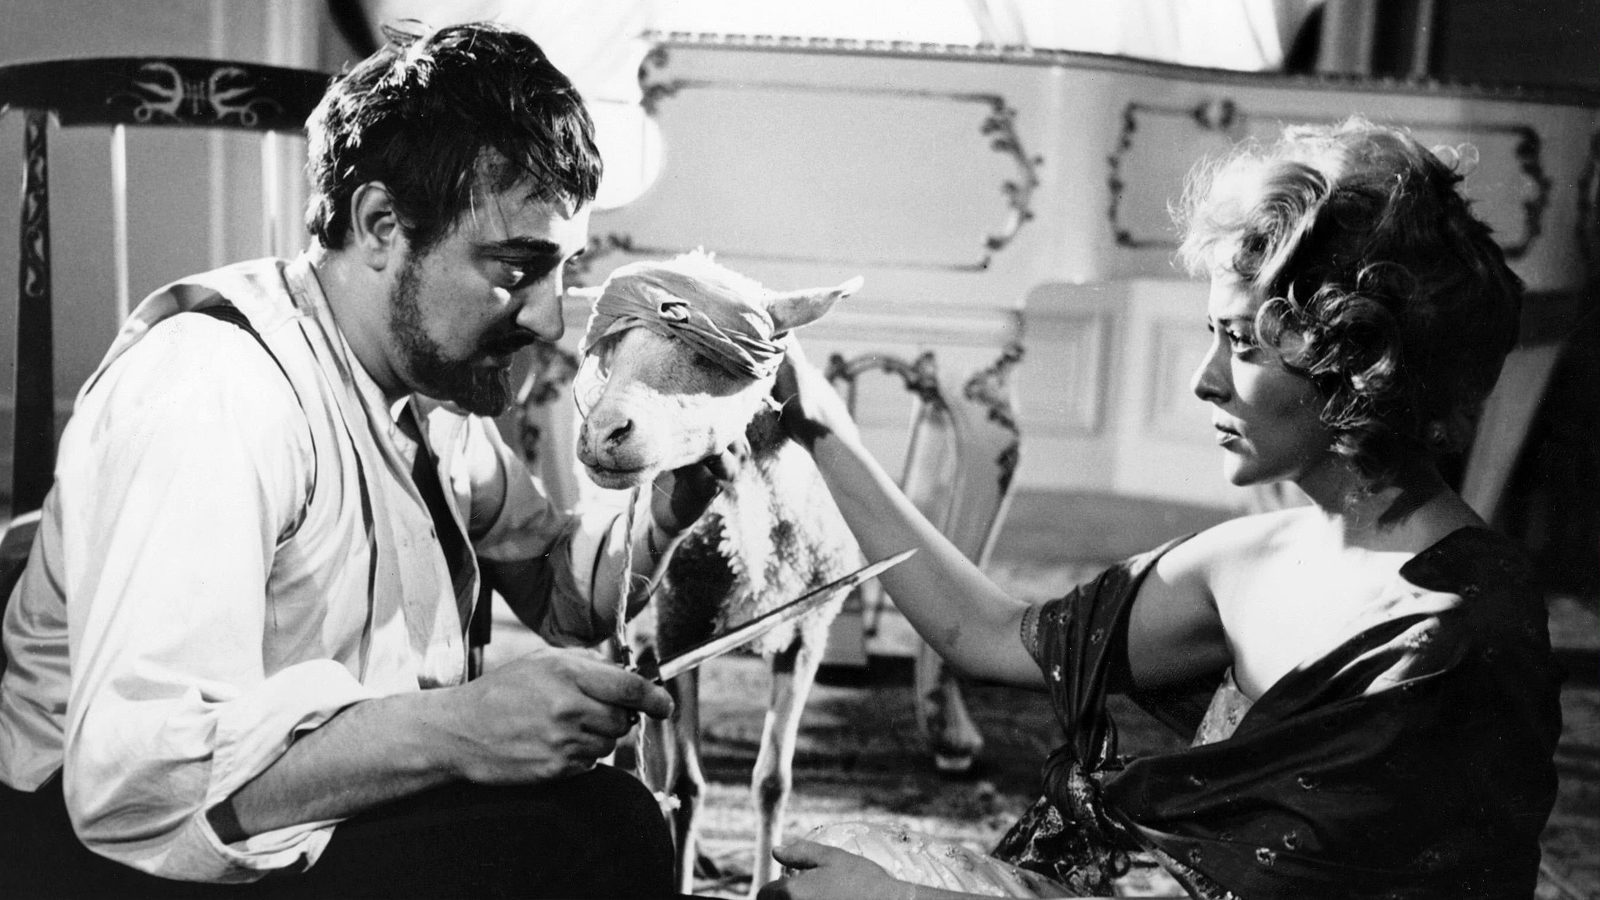 Enrique Rambal menaces Silvia Pinal with a knife in The Exterminating Angel (1962)